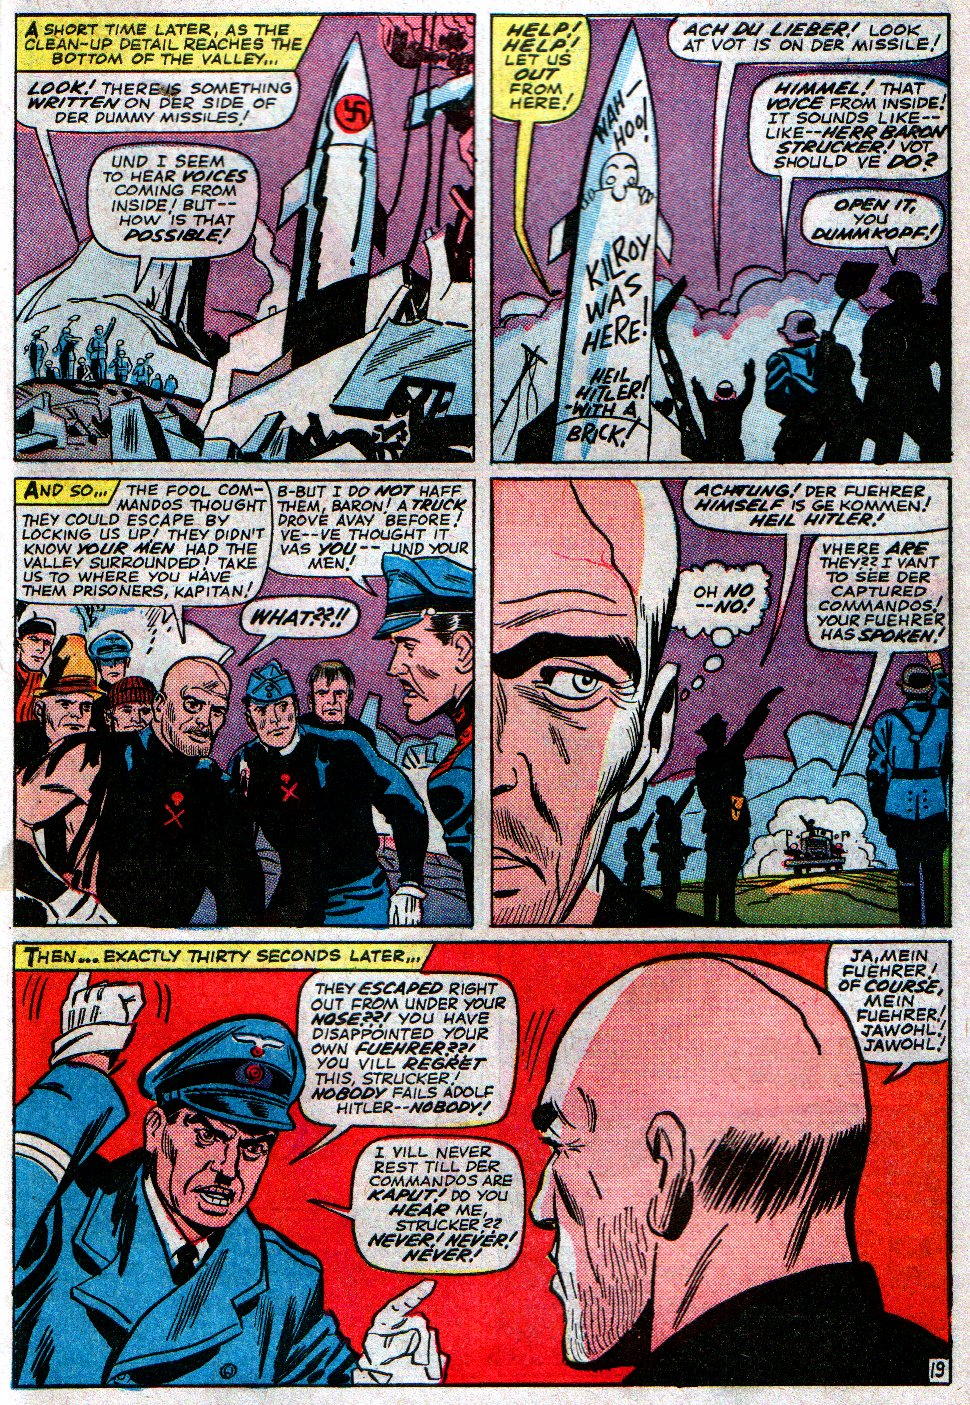 Read online Sgt. Fury comic -  Issue #14 - 27